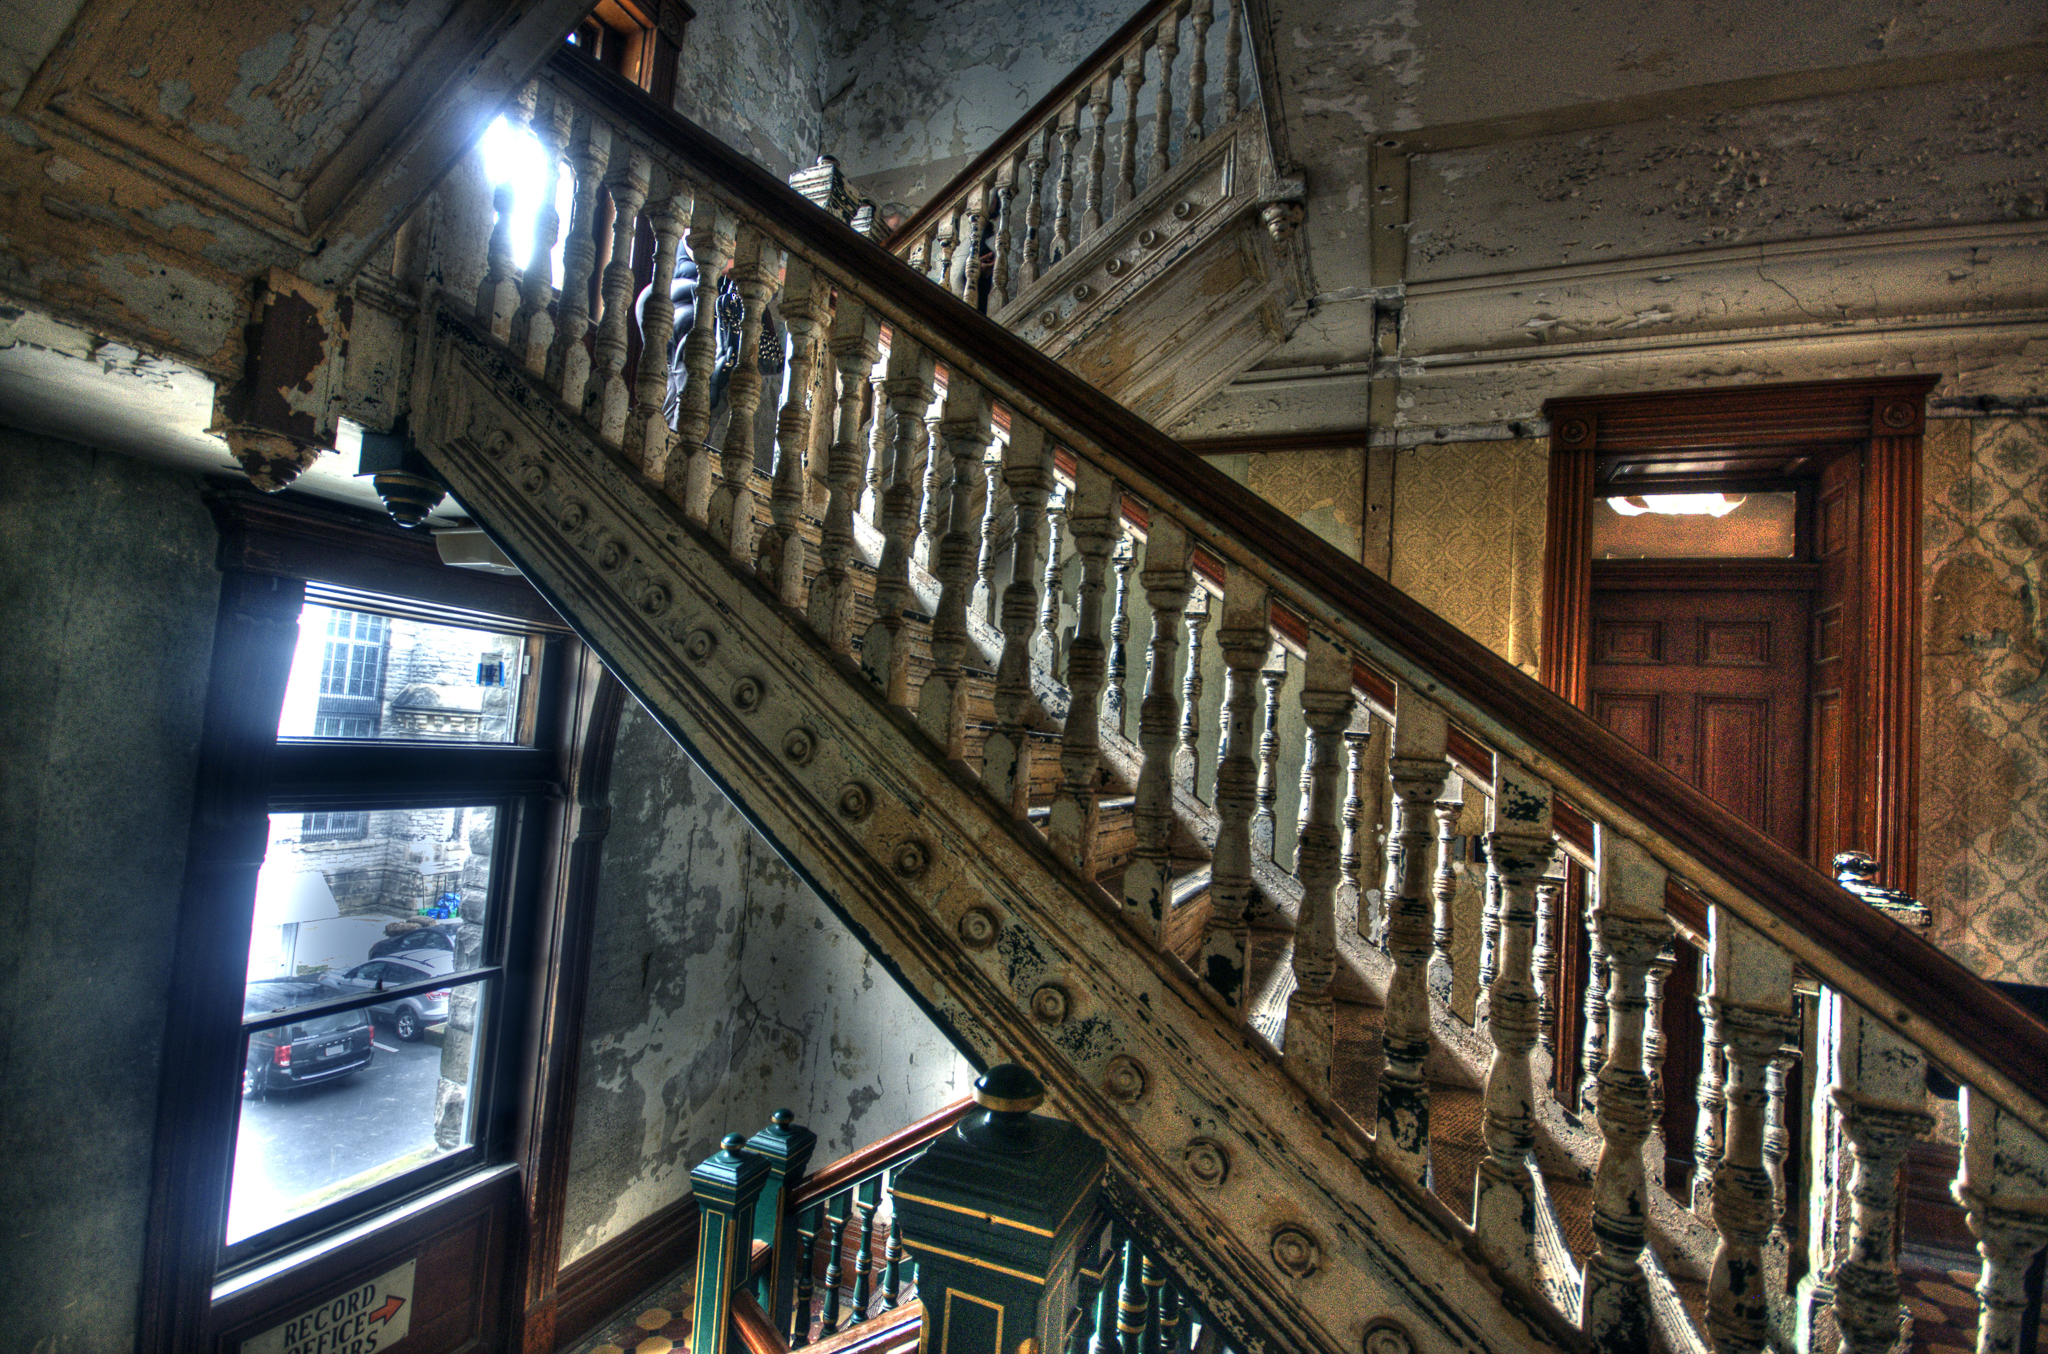 Steel staircase in the interior of the Ohio State Reformatory